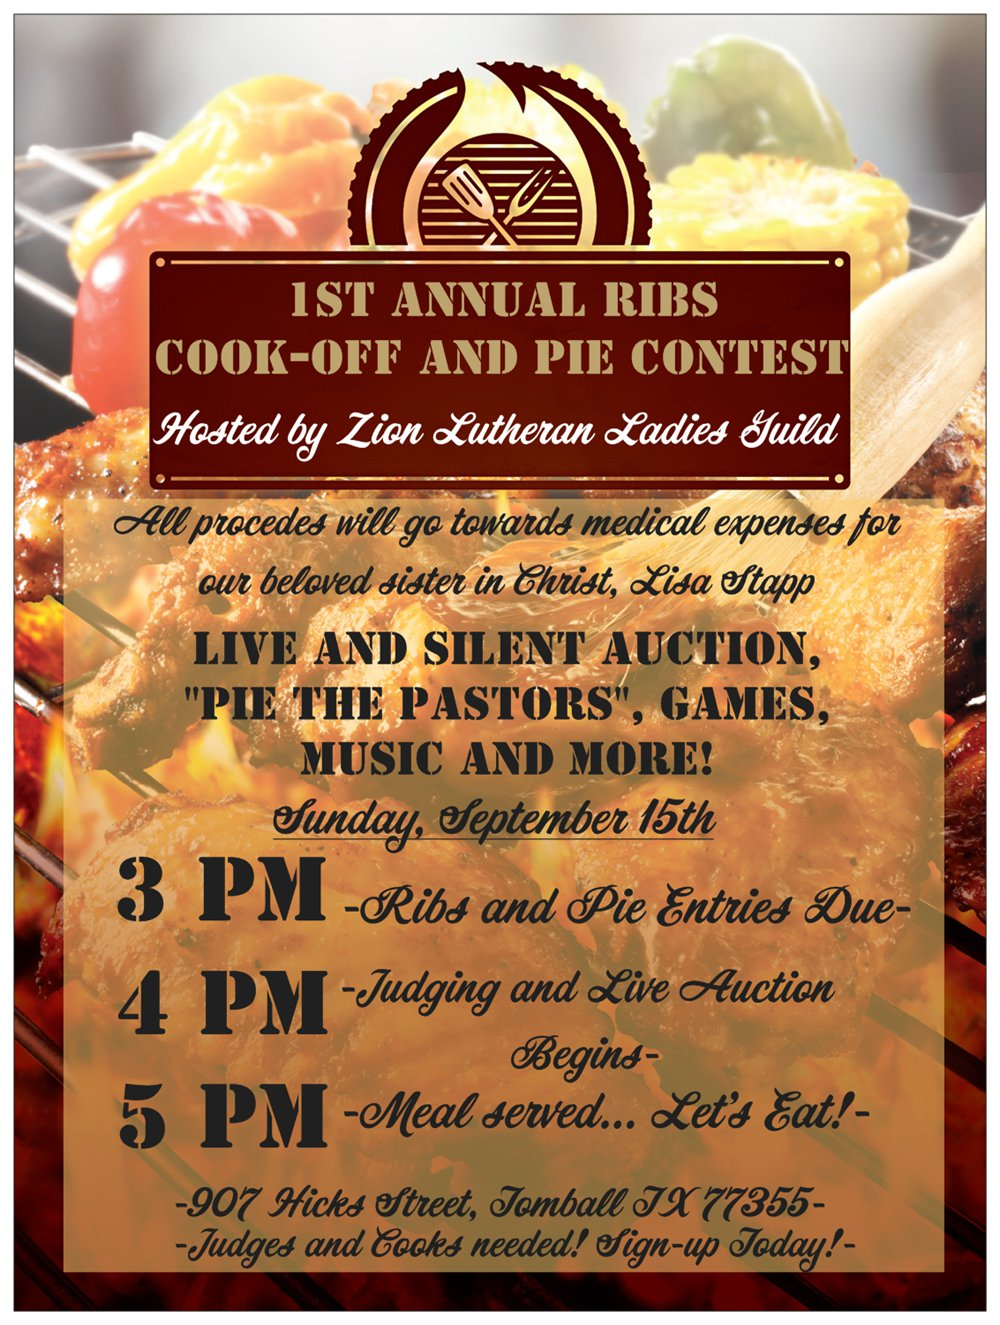 Zion Fundraiser Annual Ribs Cookoff and Pie Contest Hosted by Zion Lutheran Church, Tomball, TX